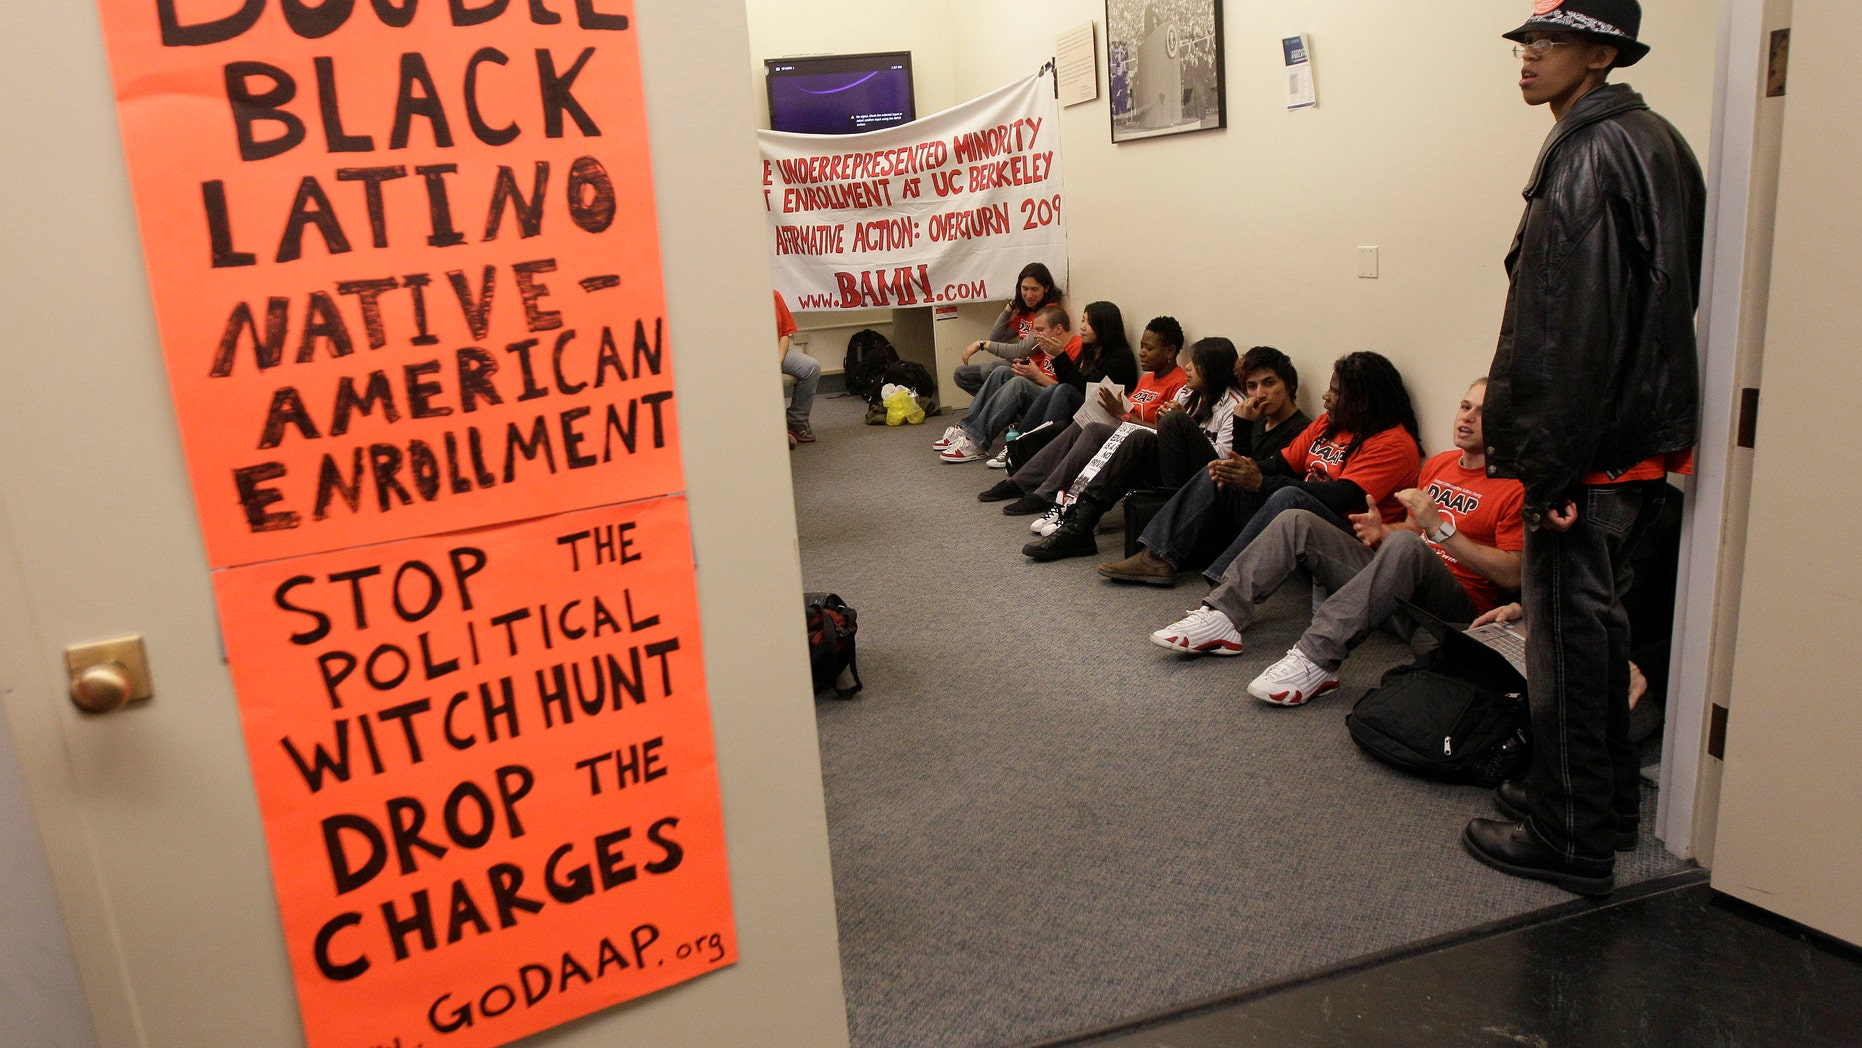 April 6, 2012: In this photo, protesters and students stage a sit in protest at the Sproul Hall Student Services Office at the University of California in Berkeley, Calif.